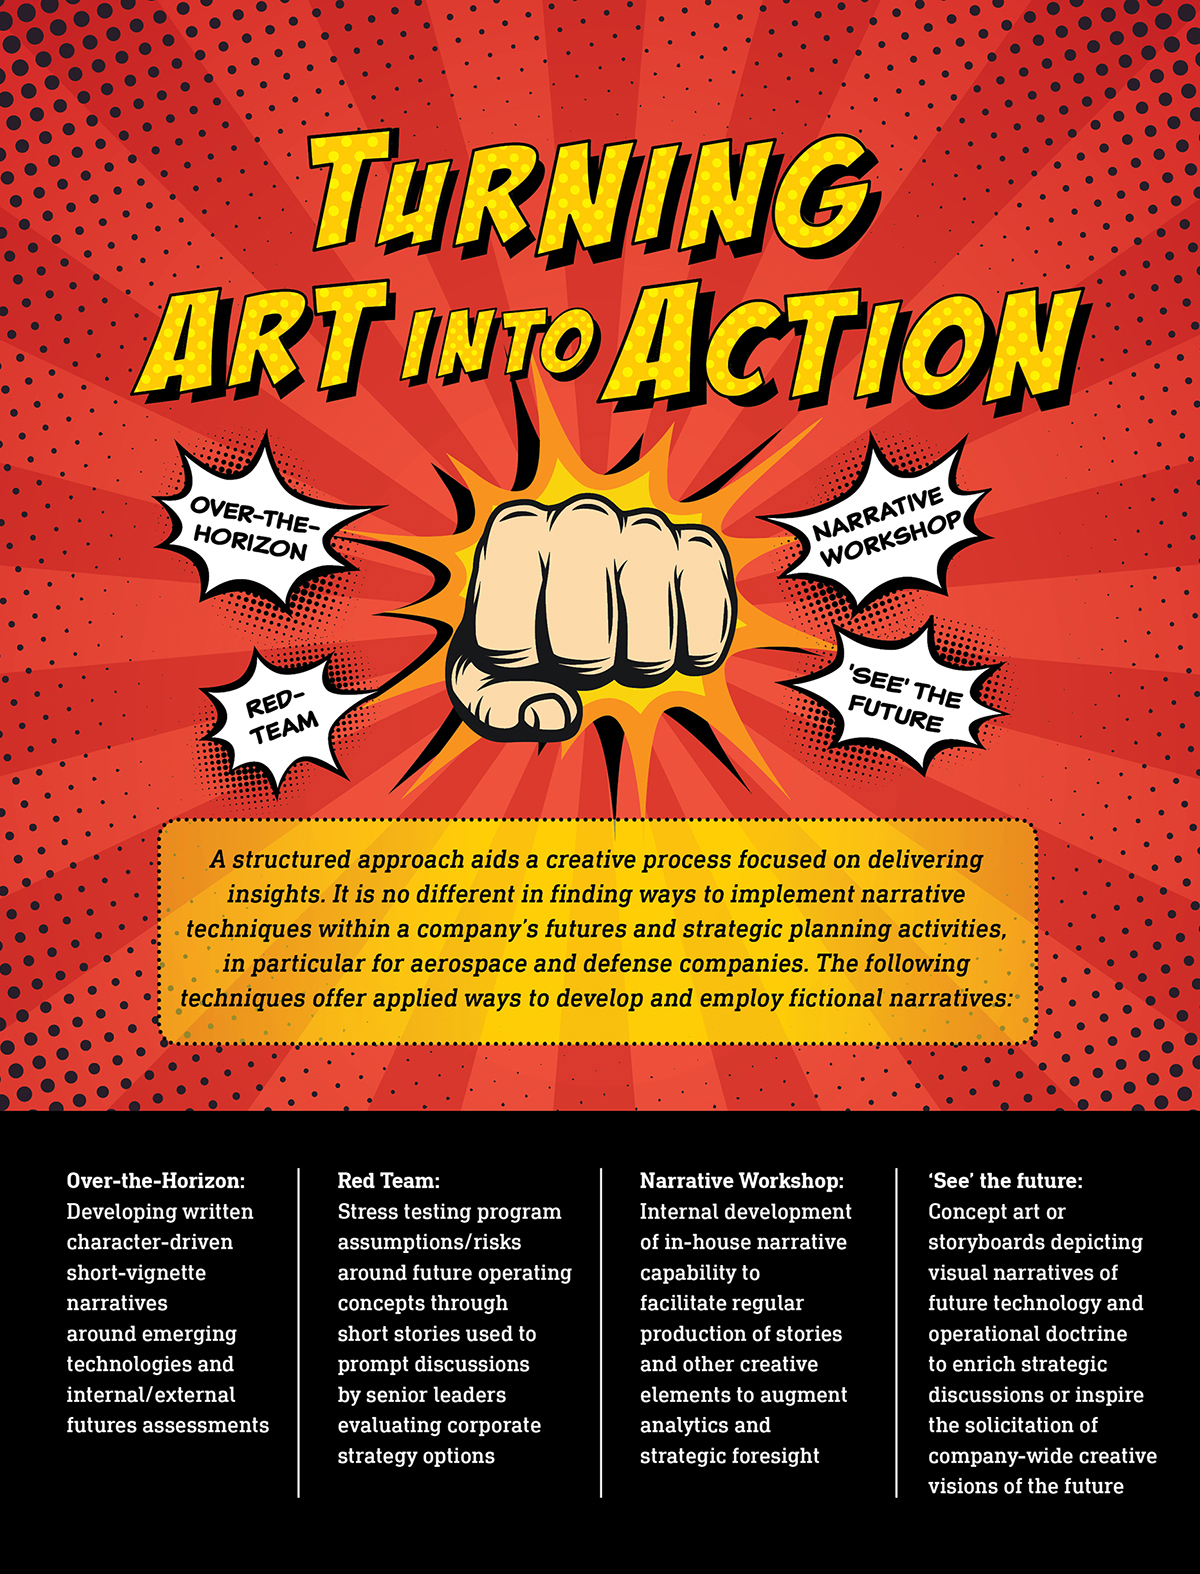 Turning Art Info Action graphic